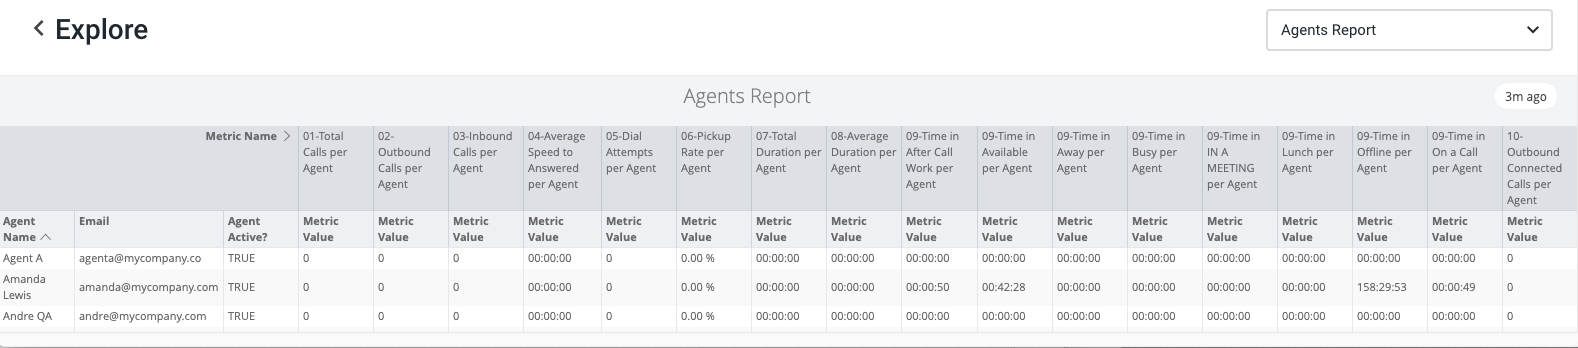 Agents_Report_example_for_Explore_overview.png